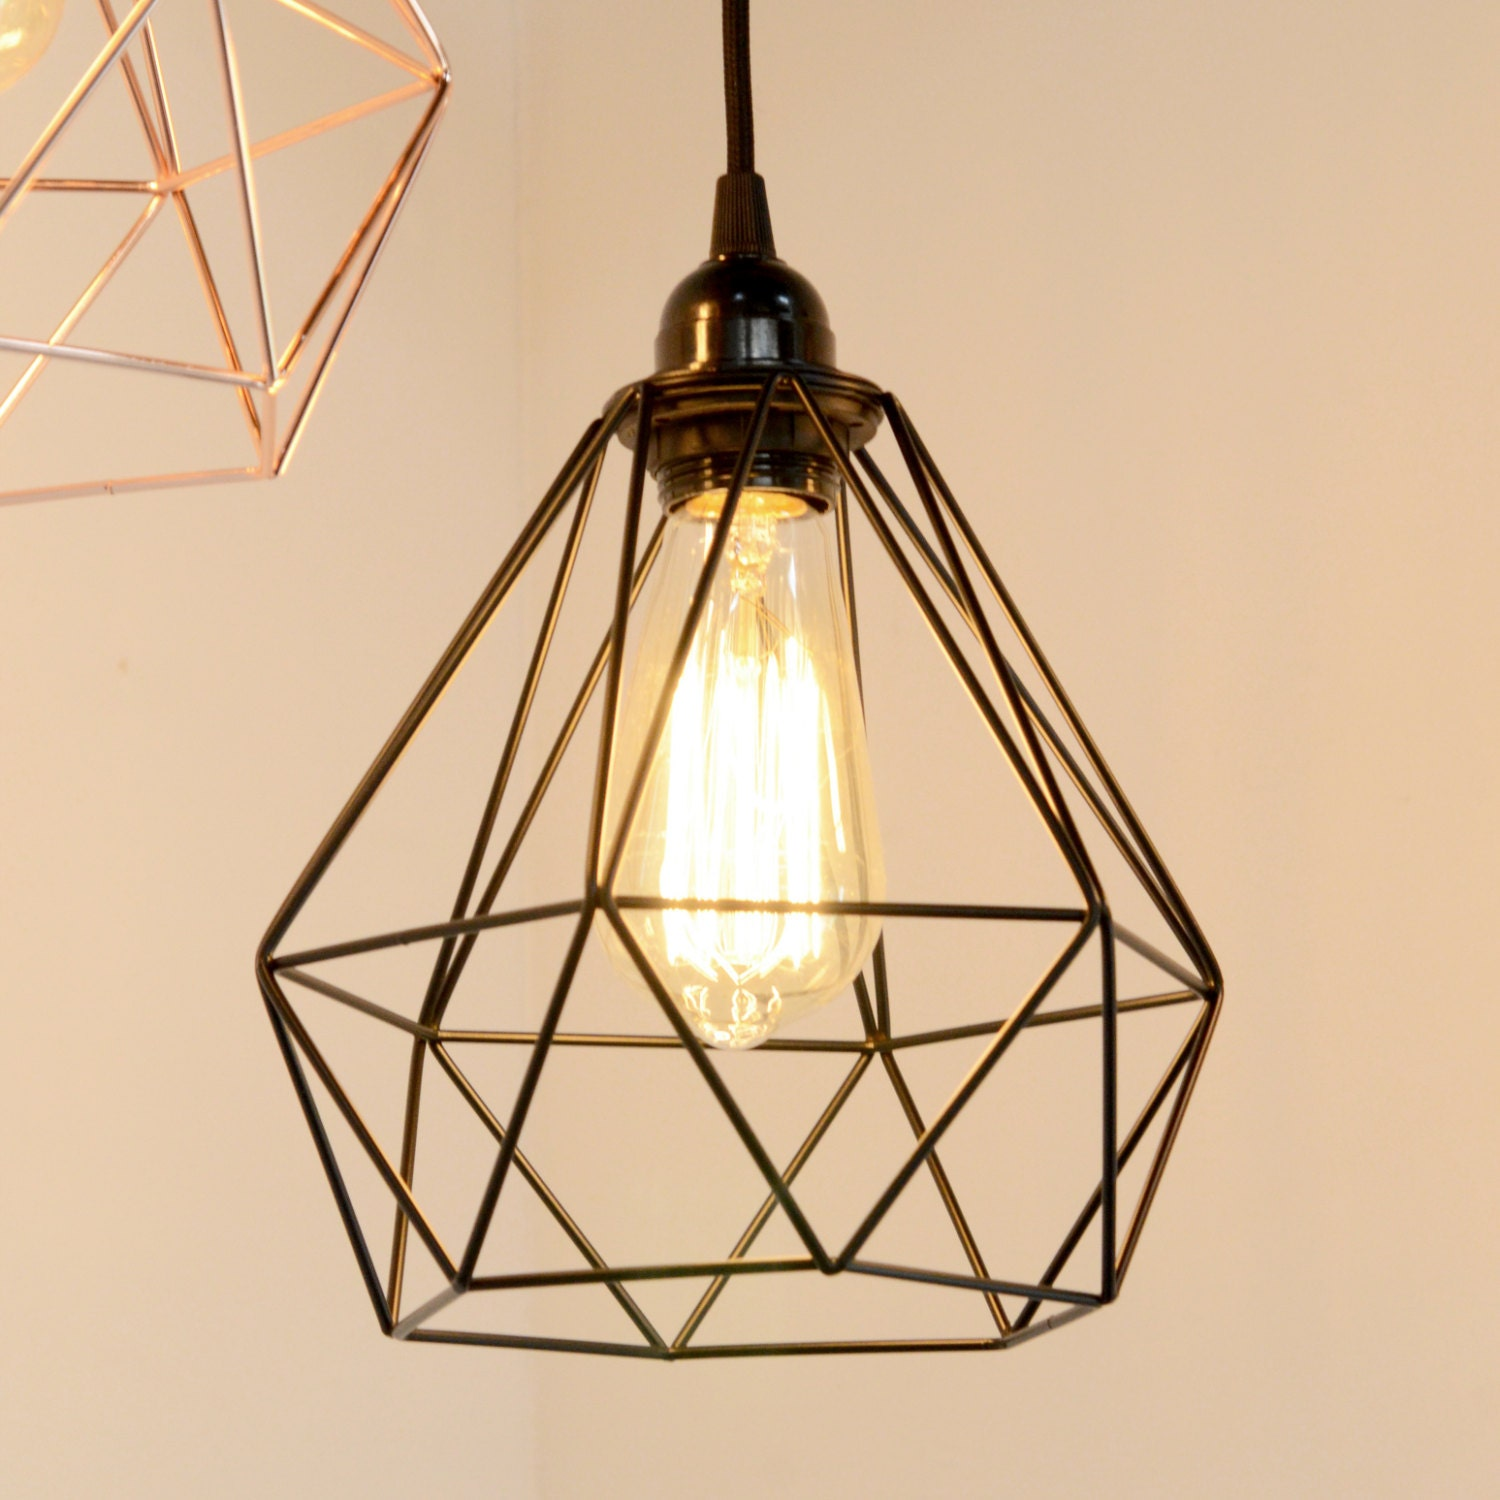 Industrial Cage Lights